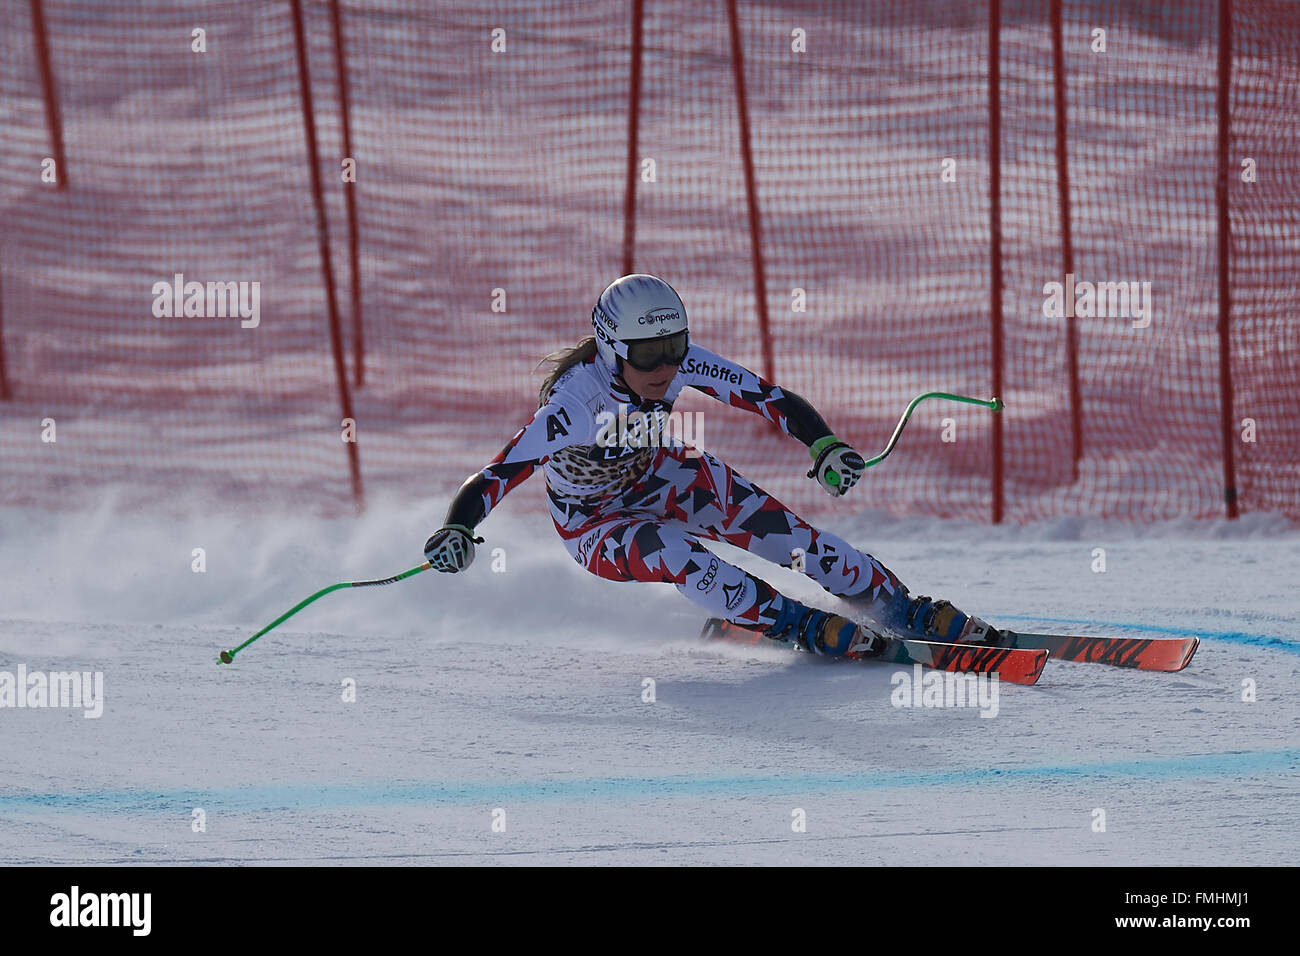 Lenzerheide, Switzerland. 12th March, 2016. Tamara Tippler (AUT) during her run in the Ladies' Super G at the Audi - Stock Image